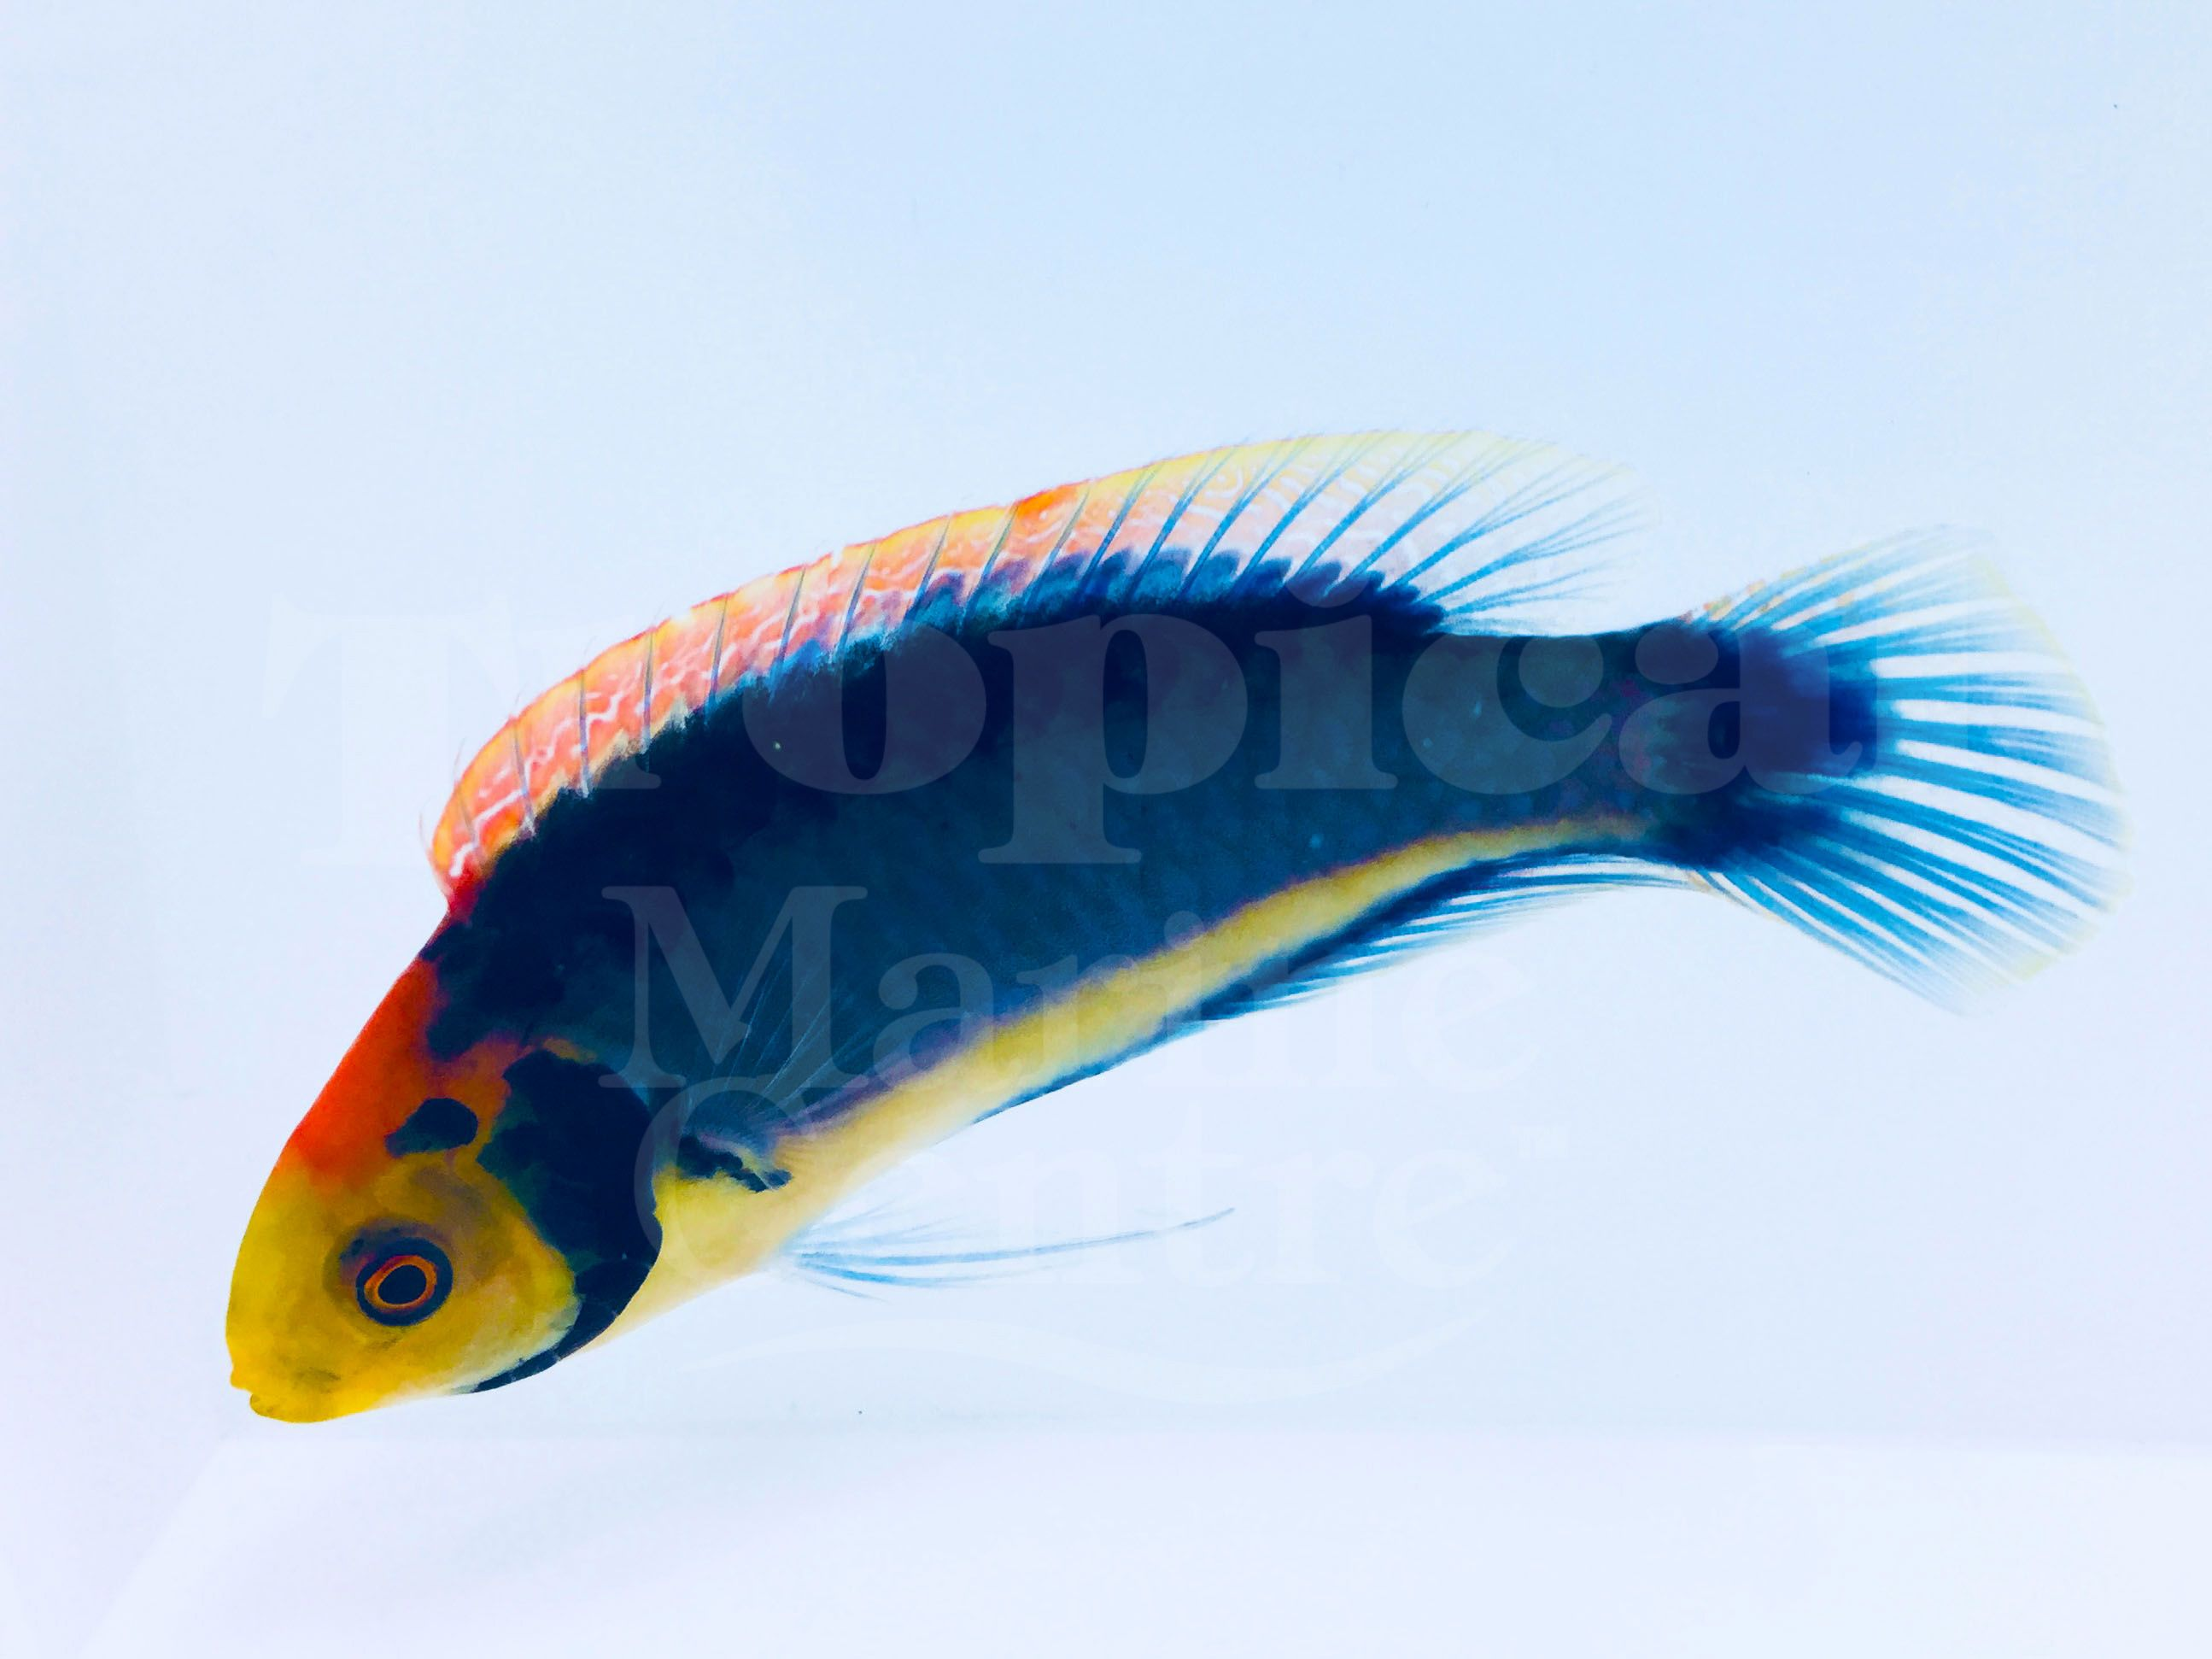 Red Head Solon Fairy Wrasse Cirrhilabrus Solorensis The Solar Fairy Wrasse Is An Eye Catching Wrasse Species That Can Be Found In A Marine Fish Fish Pet Fish